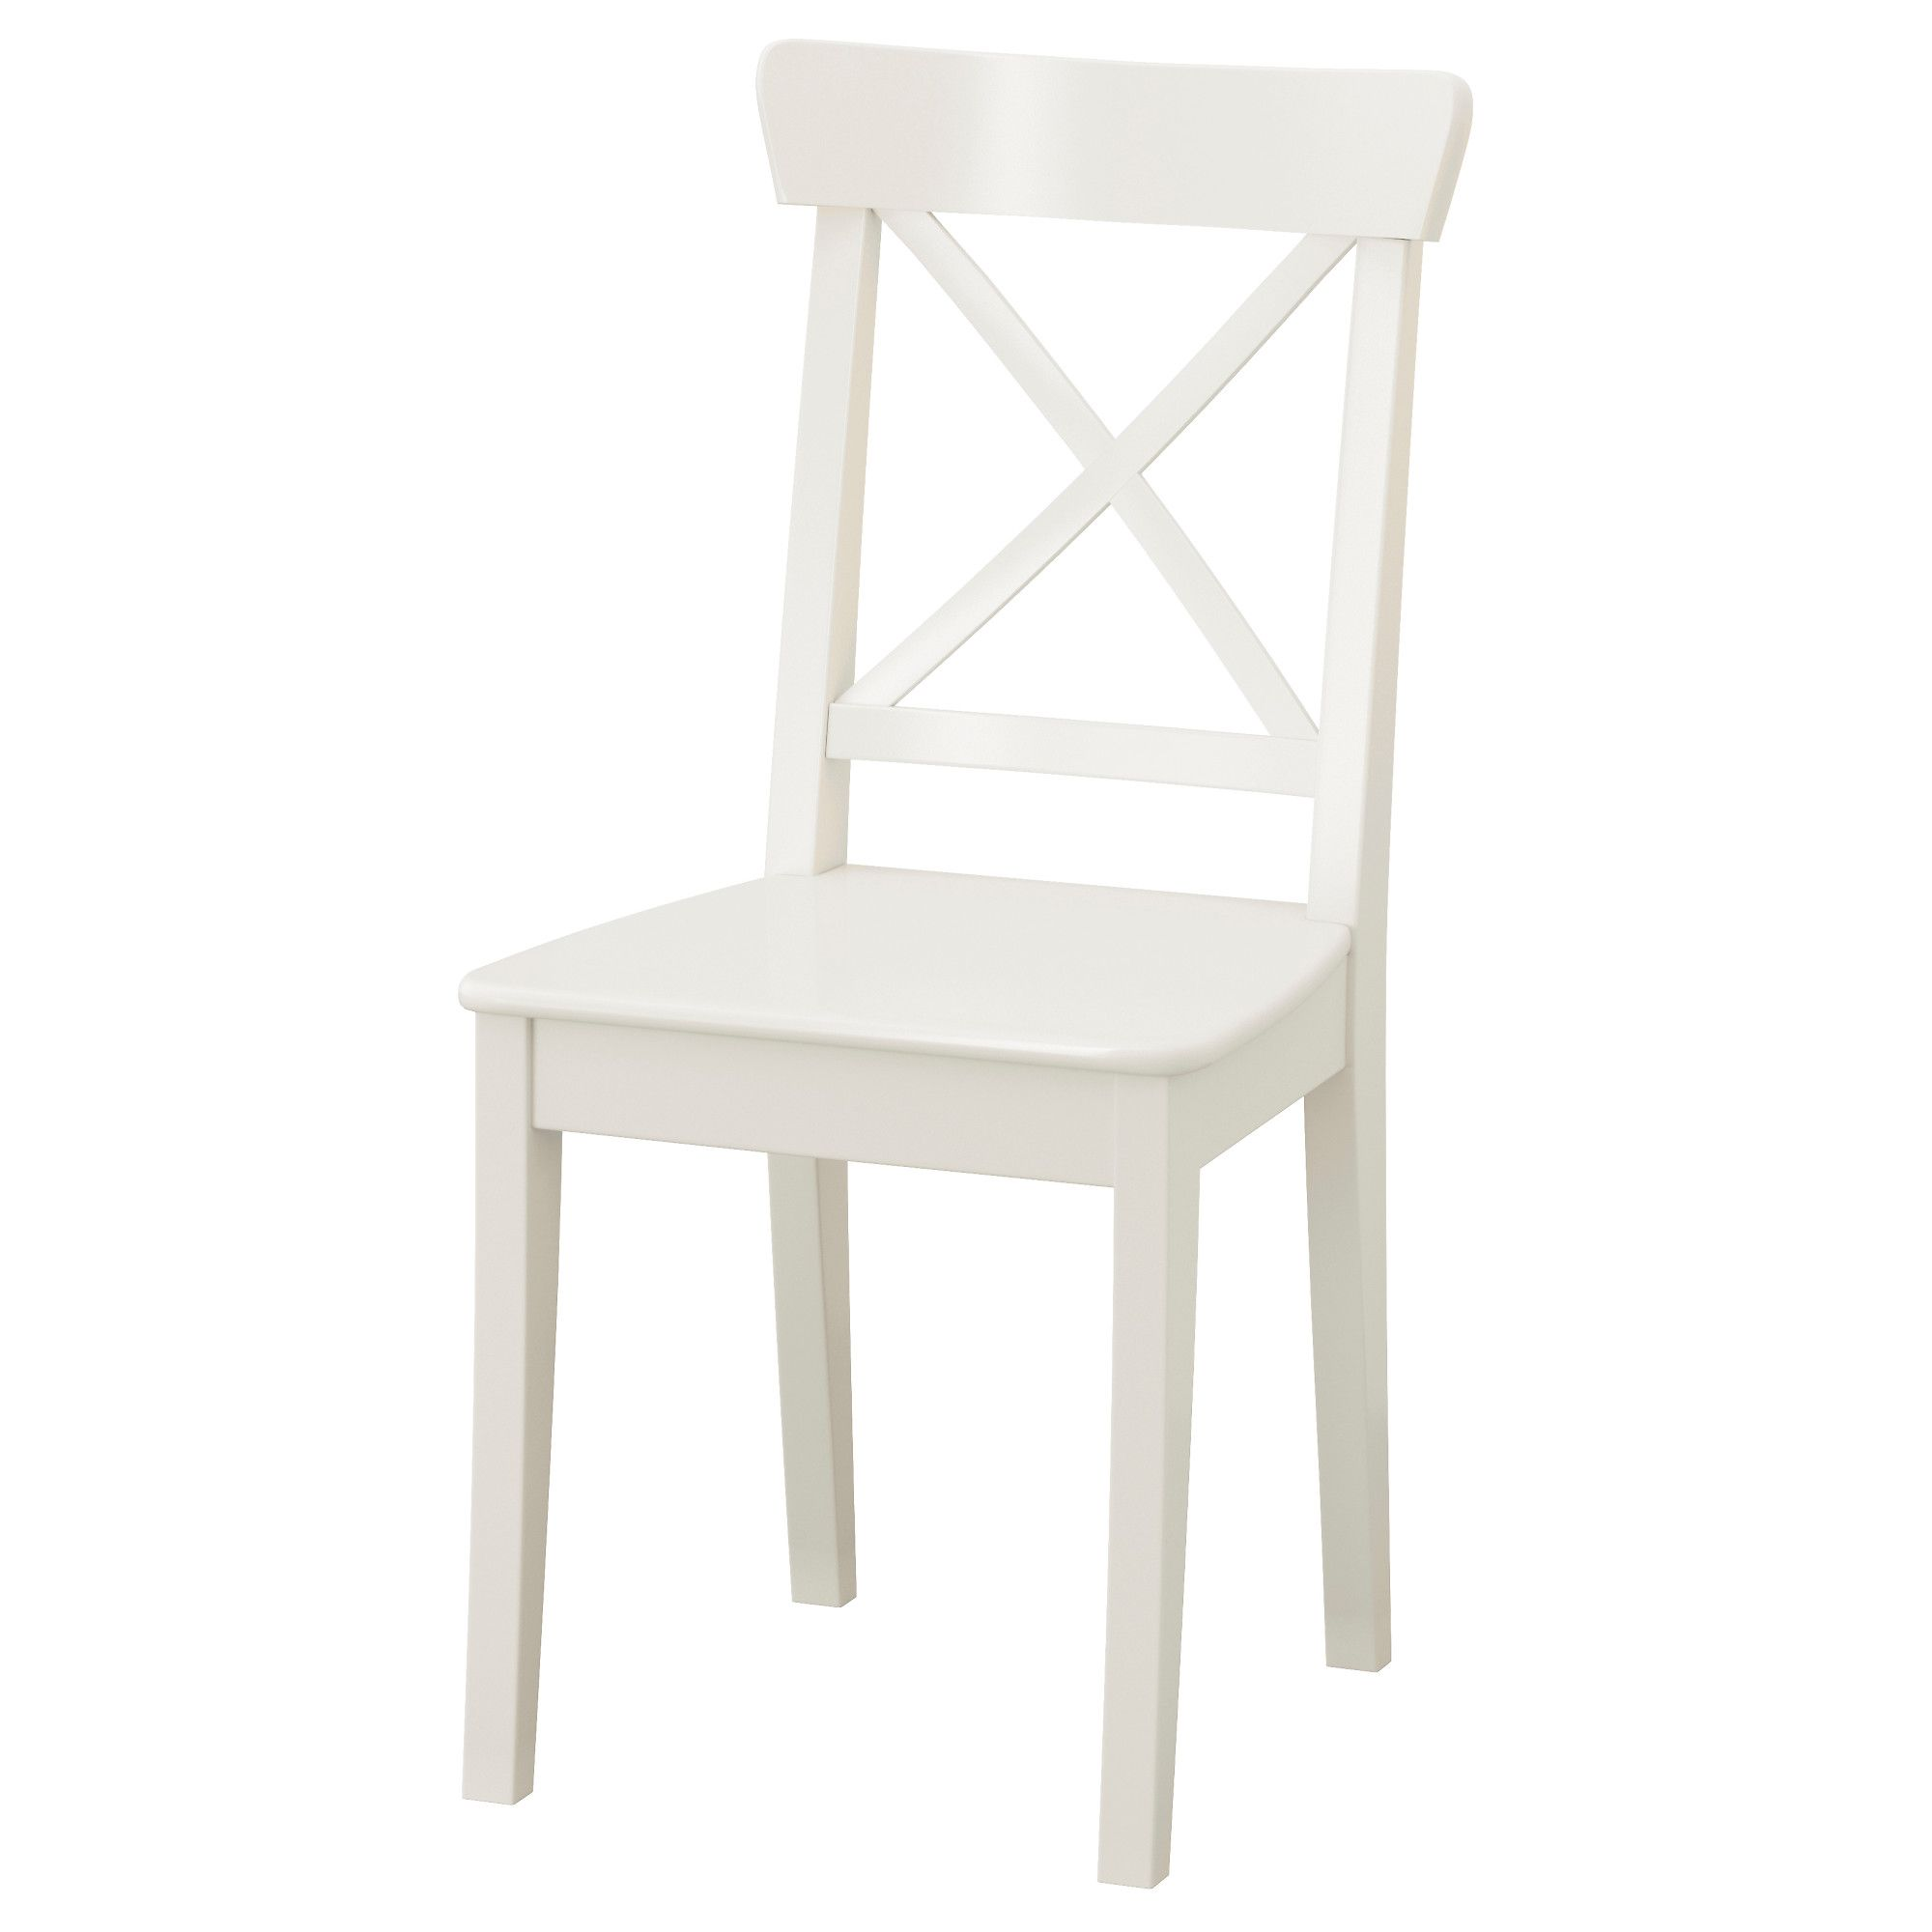 Holz Sessel Ikea Ingolf Chair White Home 3 Ikea Dining Chair White Wooden